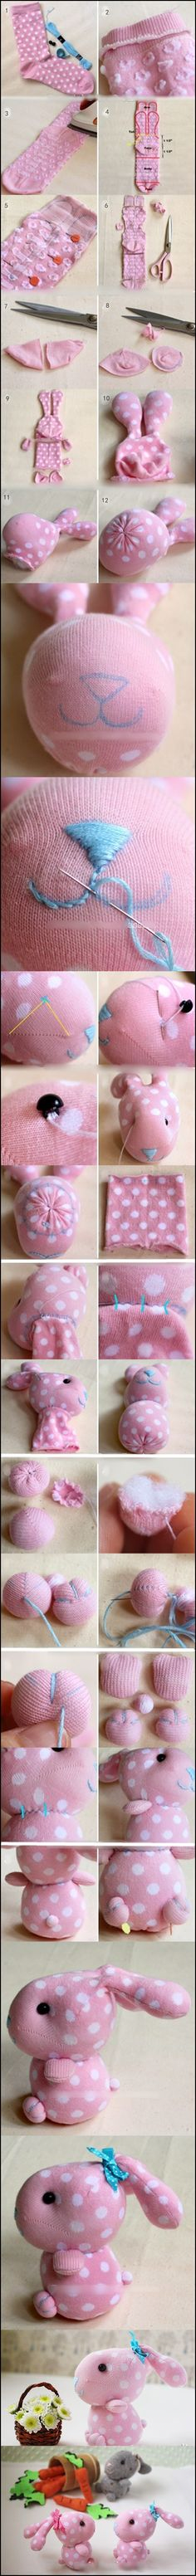 I absolutely can not imagine this cute bunny is done with socks, I amazed of human creativity, with this kind of bunny to sleep, or watching it smiled at me on the windowsill , or as a gift for children . . . I can not wait to do one, How about you?